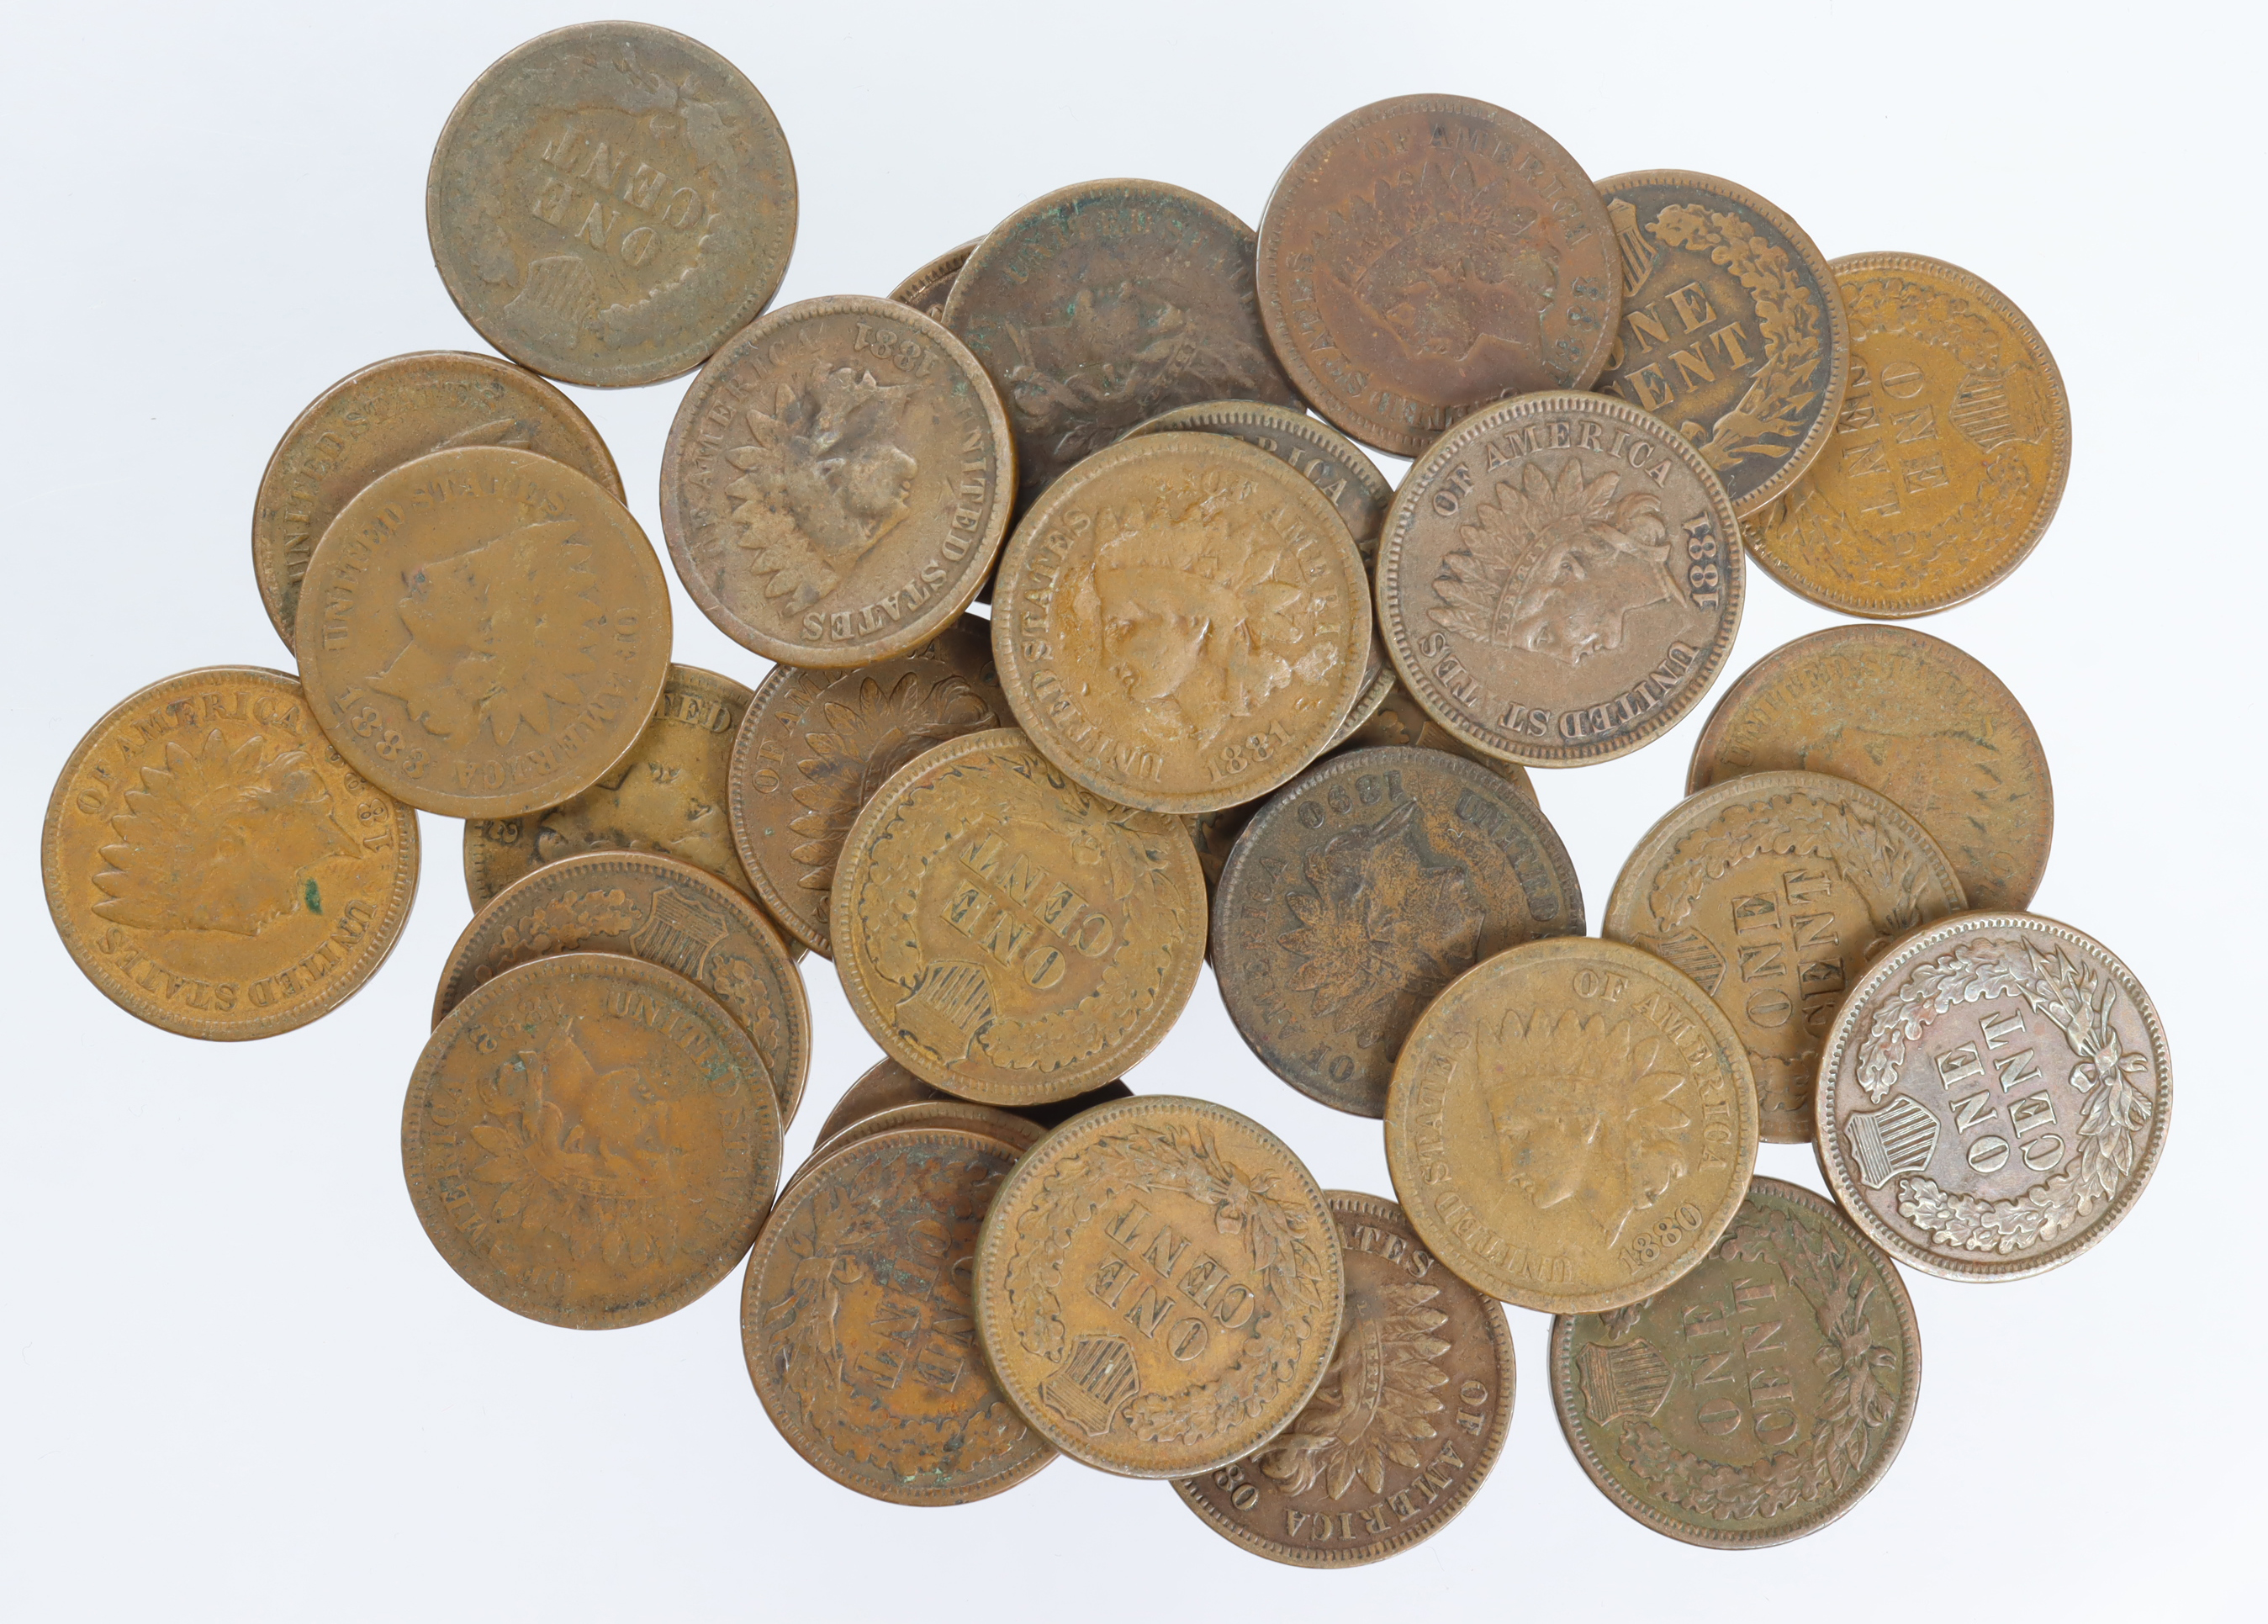 USA Indian Head Cents (31) 1864 to 1902, mostly 1880s, mixed grade.